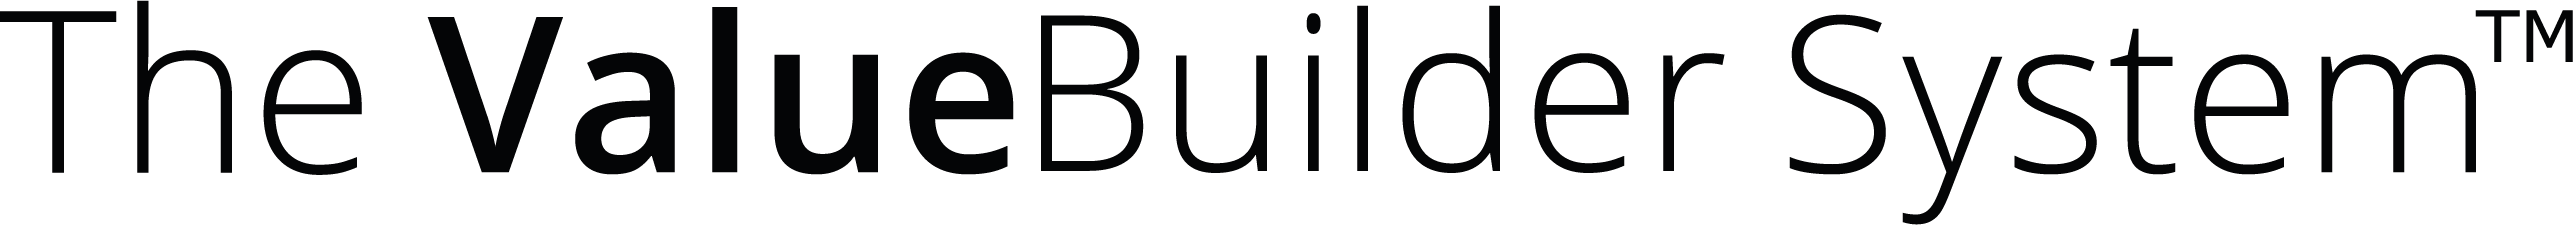 The Value Builder System logo